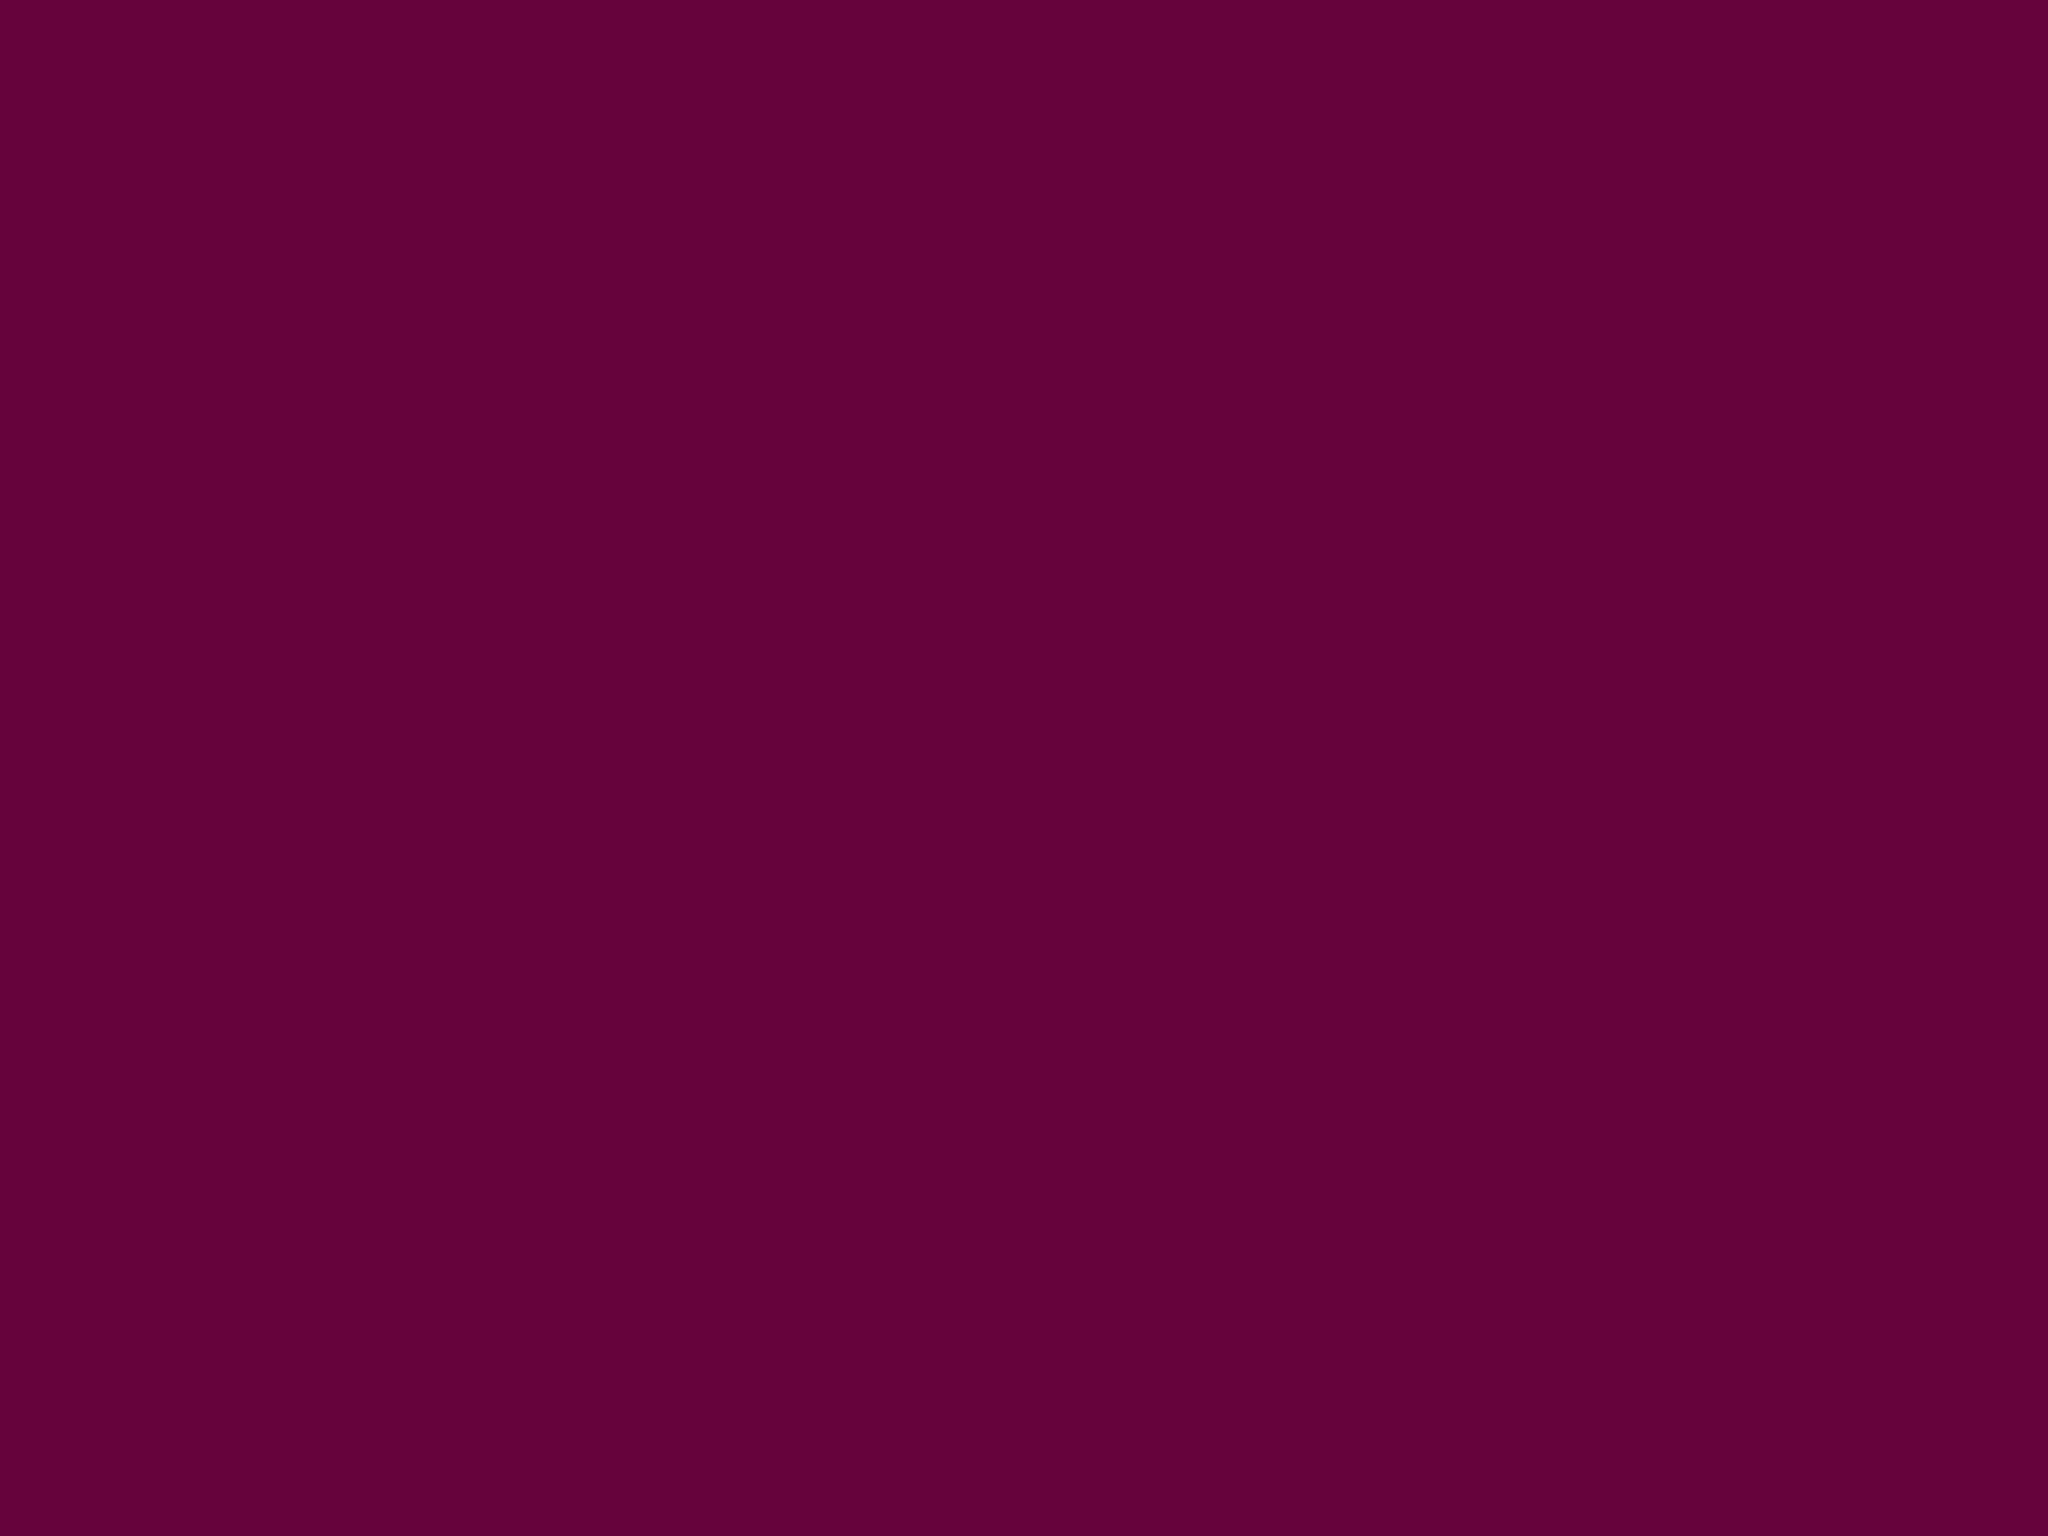 2048x1536 Tyrian Purple Solid Color Background